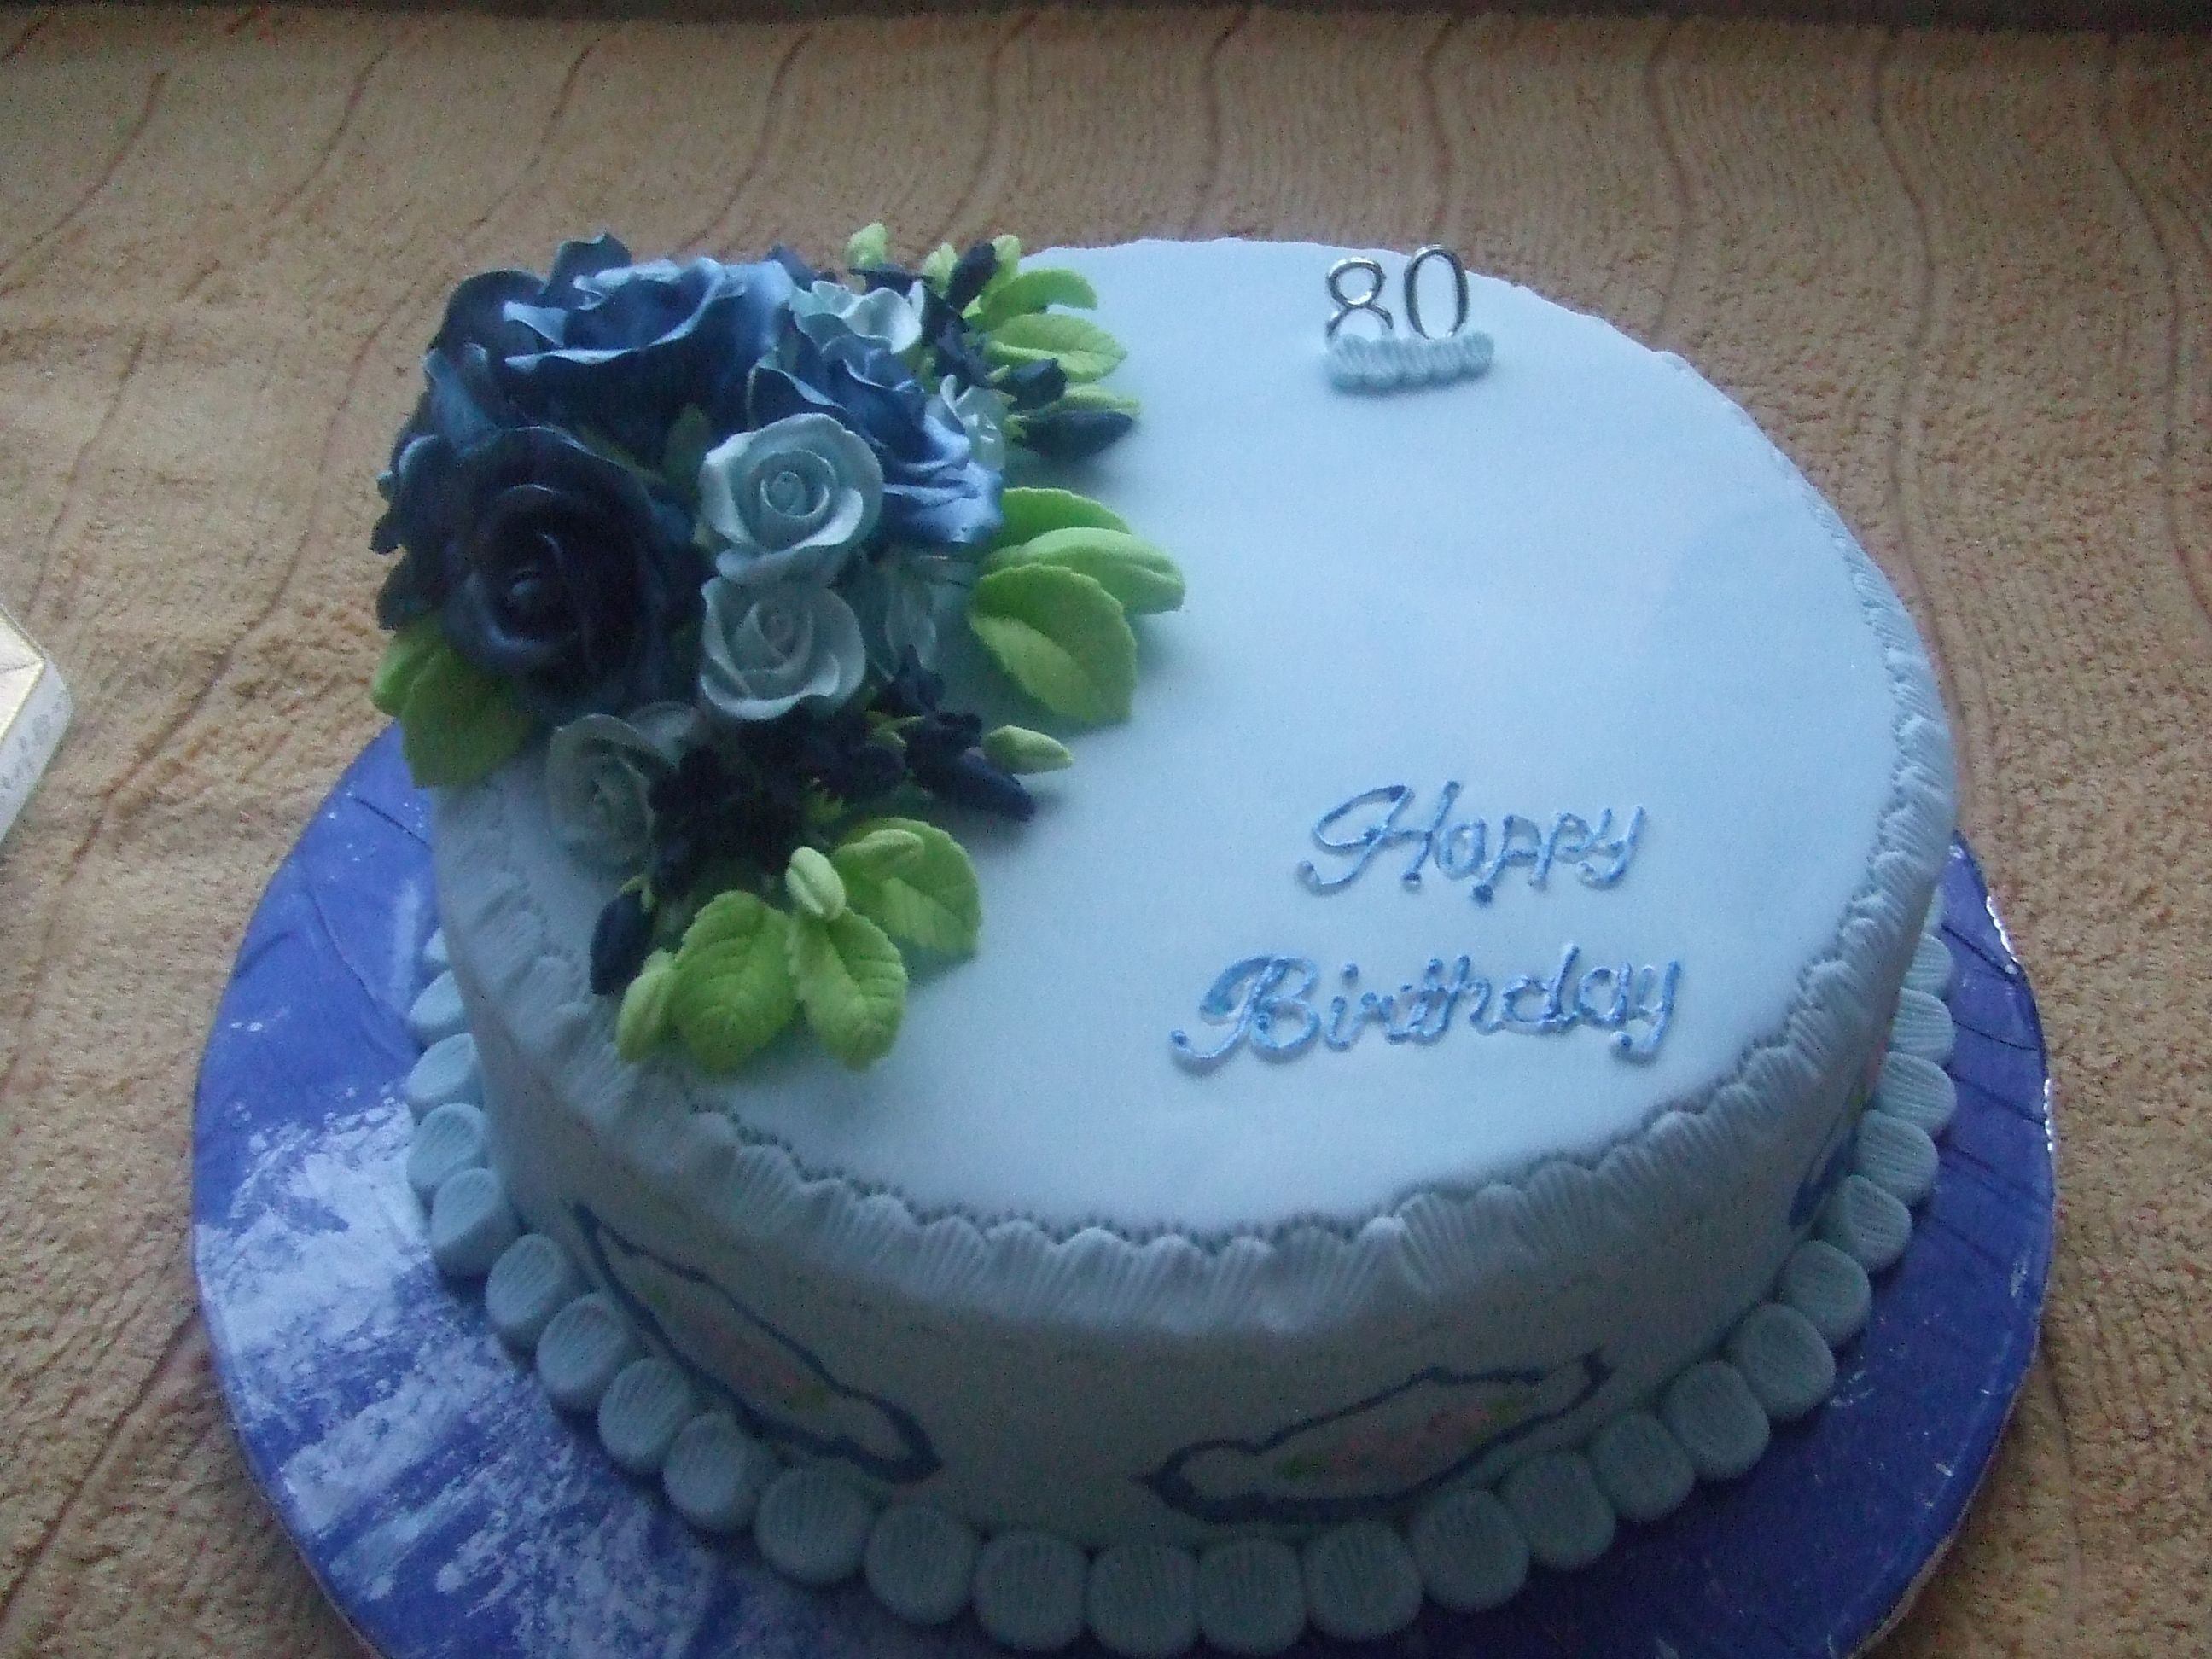 Ladys 80th birthday cake done in Baby Blue with royal blue and baby